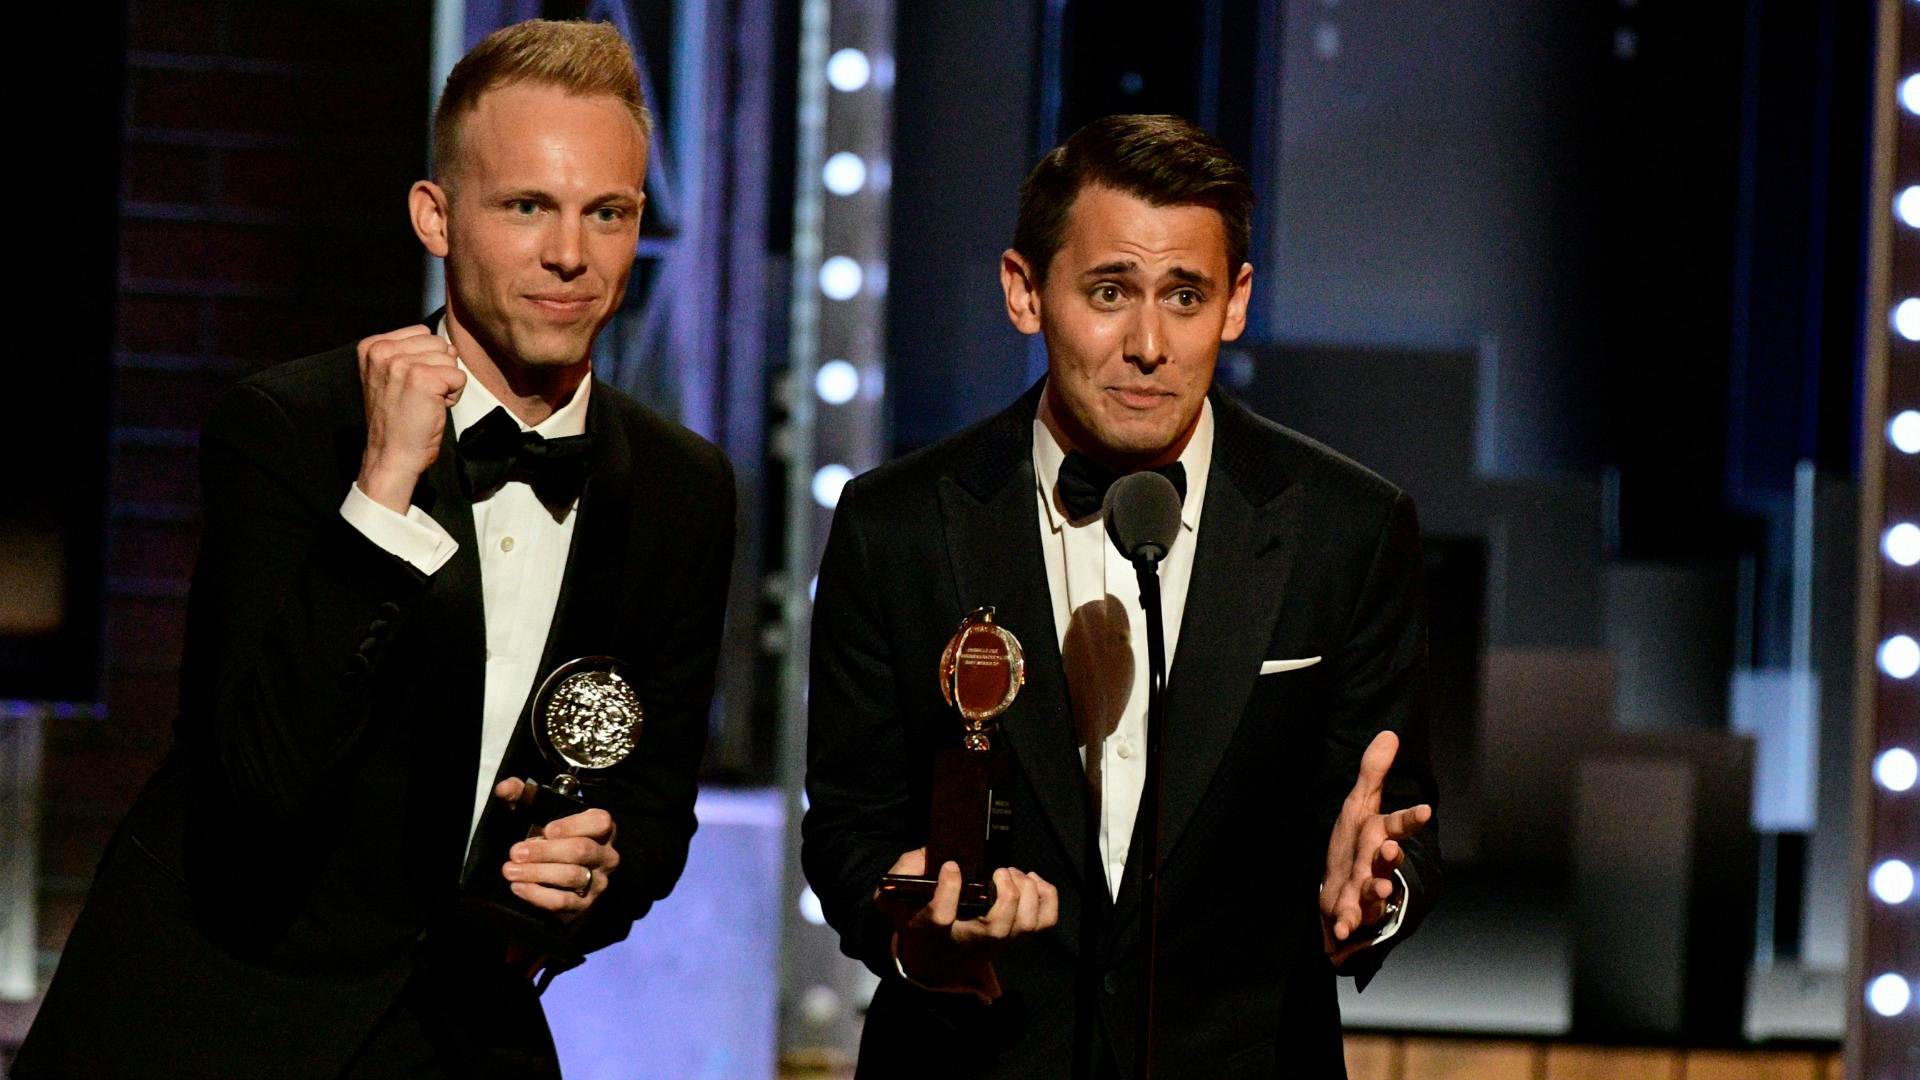 Benj Pasek & Justin Paul win the 71st Annual Tony Award for Best Original Score (Music and/or Lyrics) Written for the Theatre